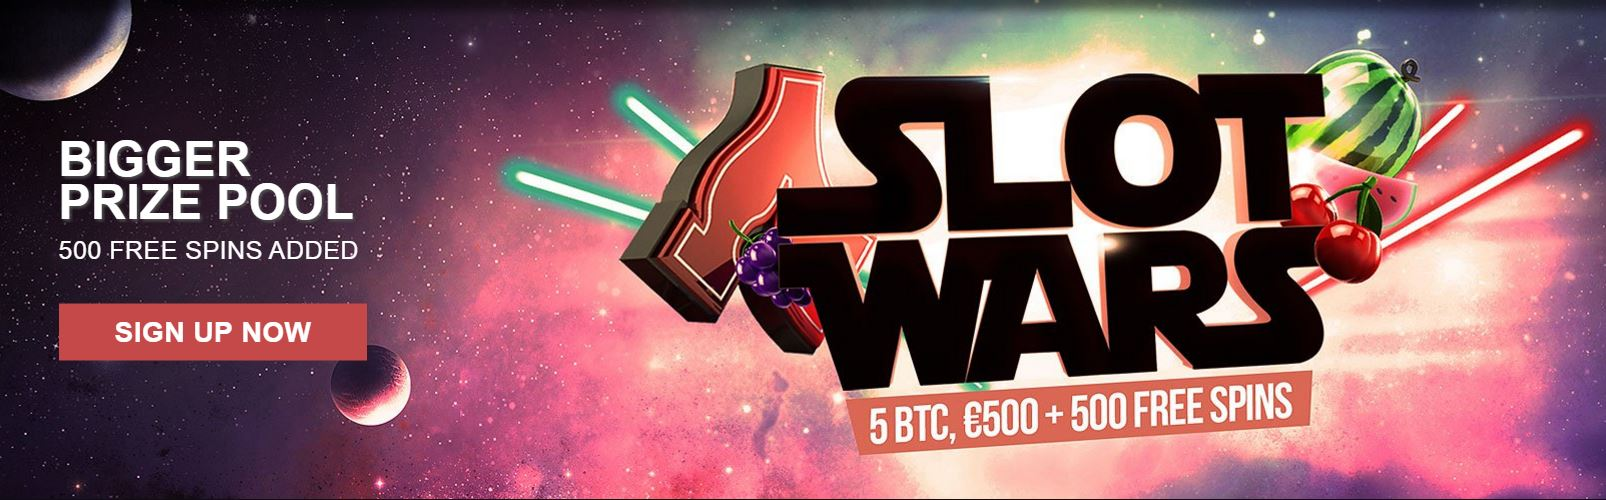 Bitcoin Casinos Slot Wars Banner